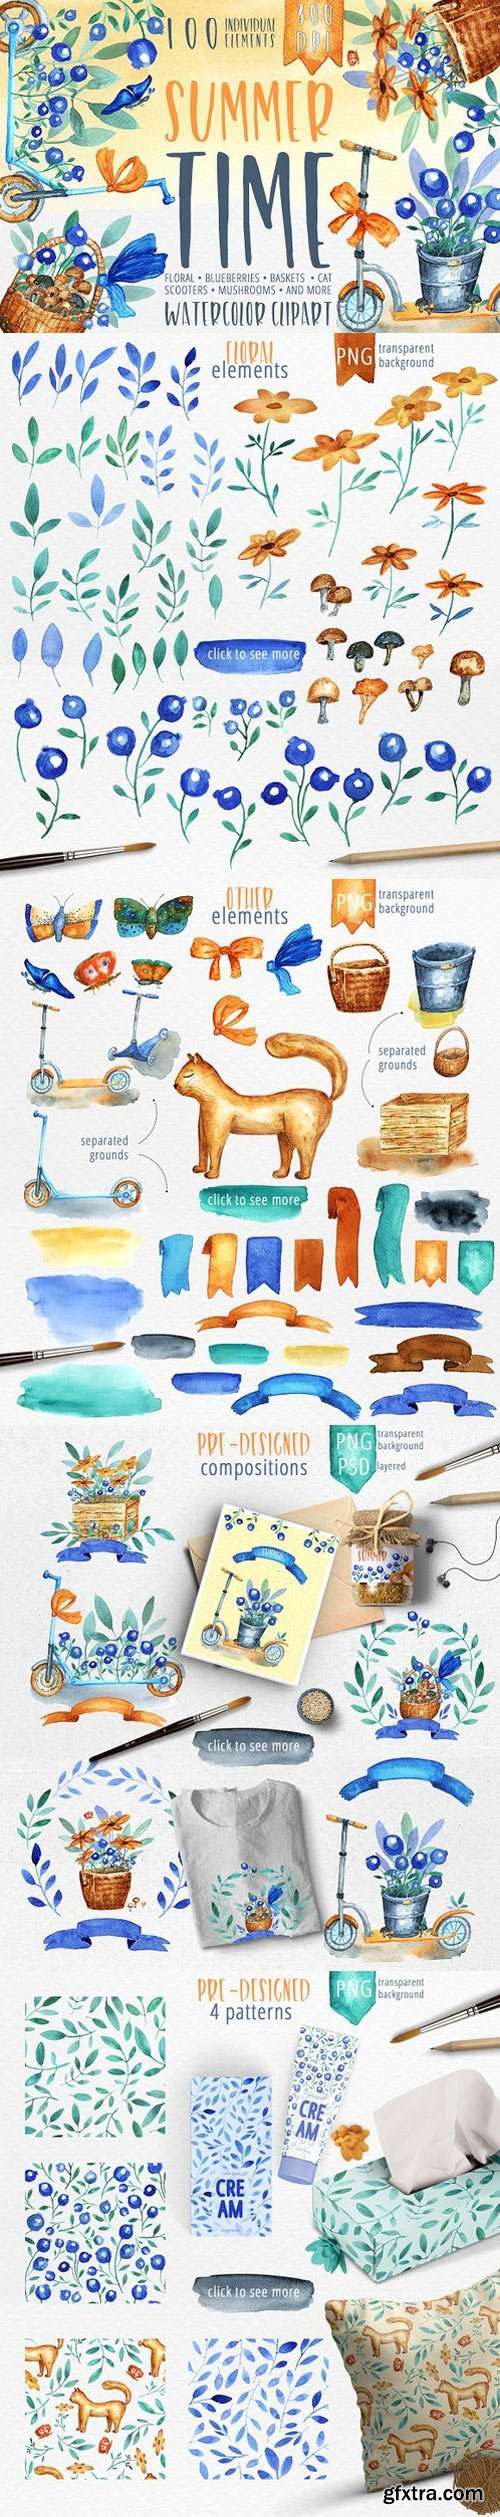 Summer Time - watercolor clipart